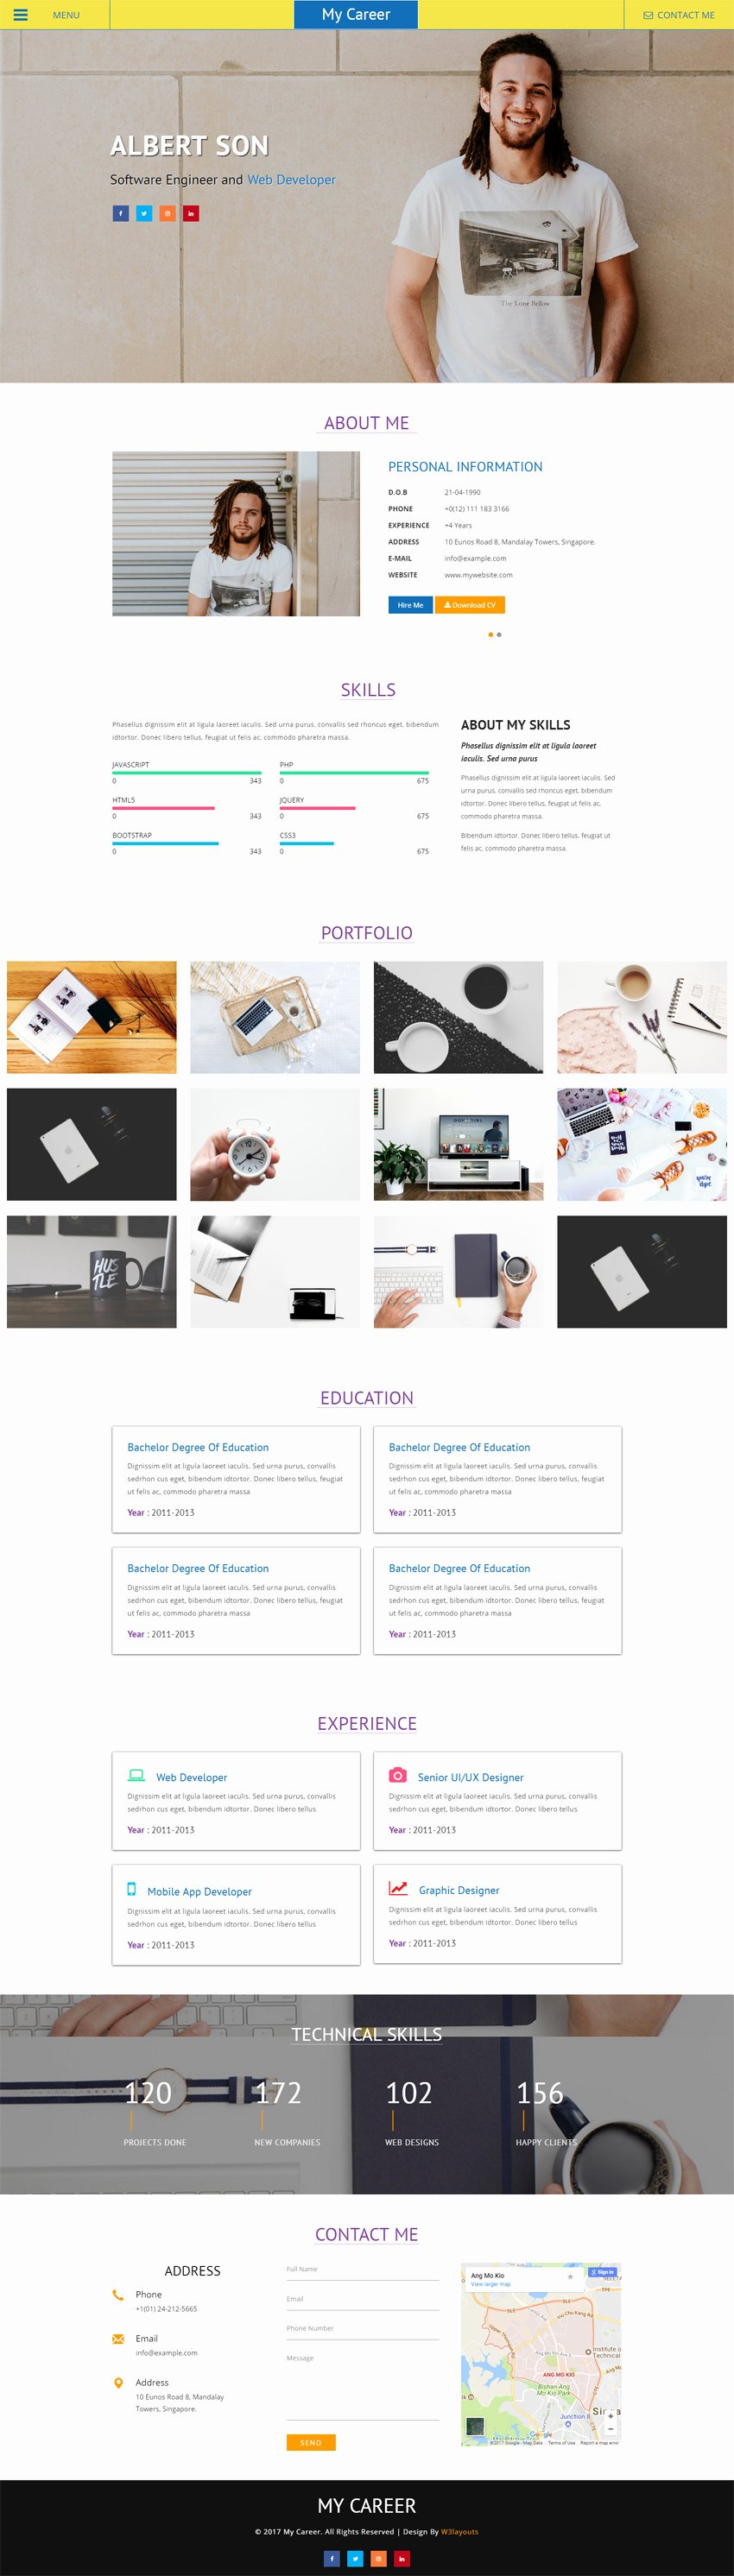 My Career A Personal Website Flat Bootstrap Responsive Web